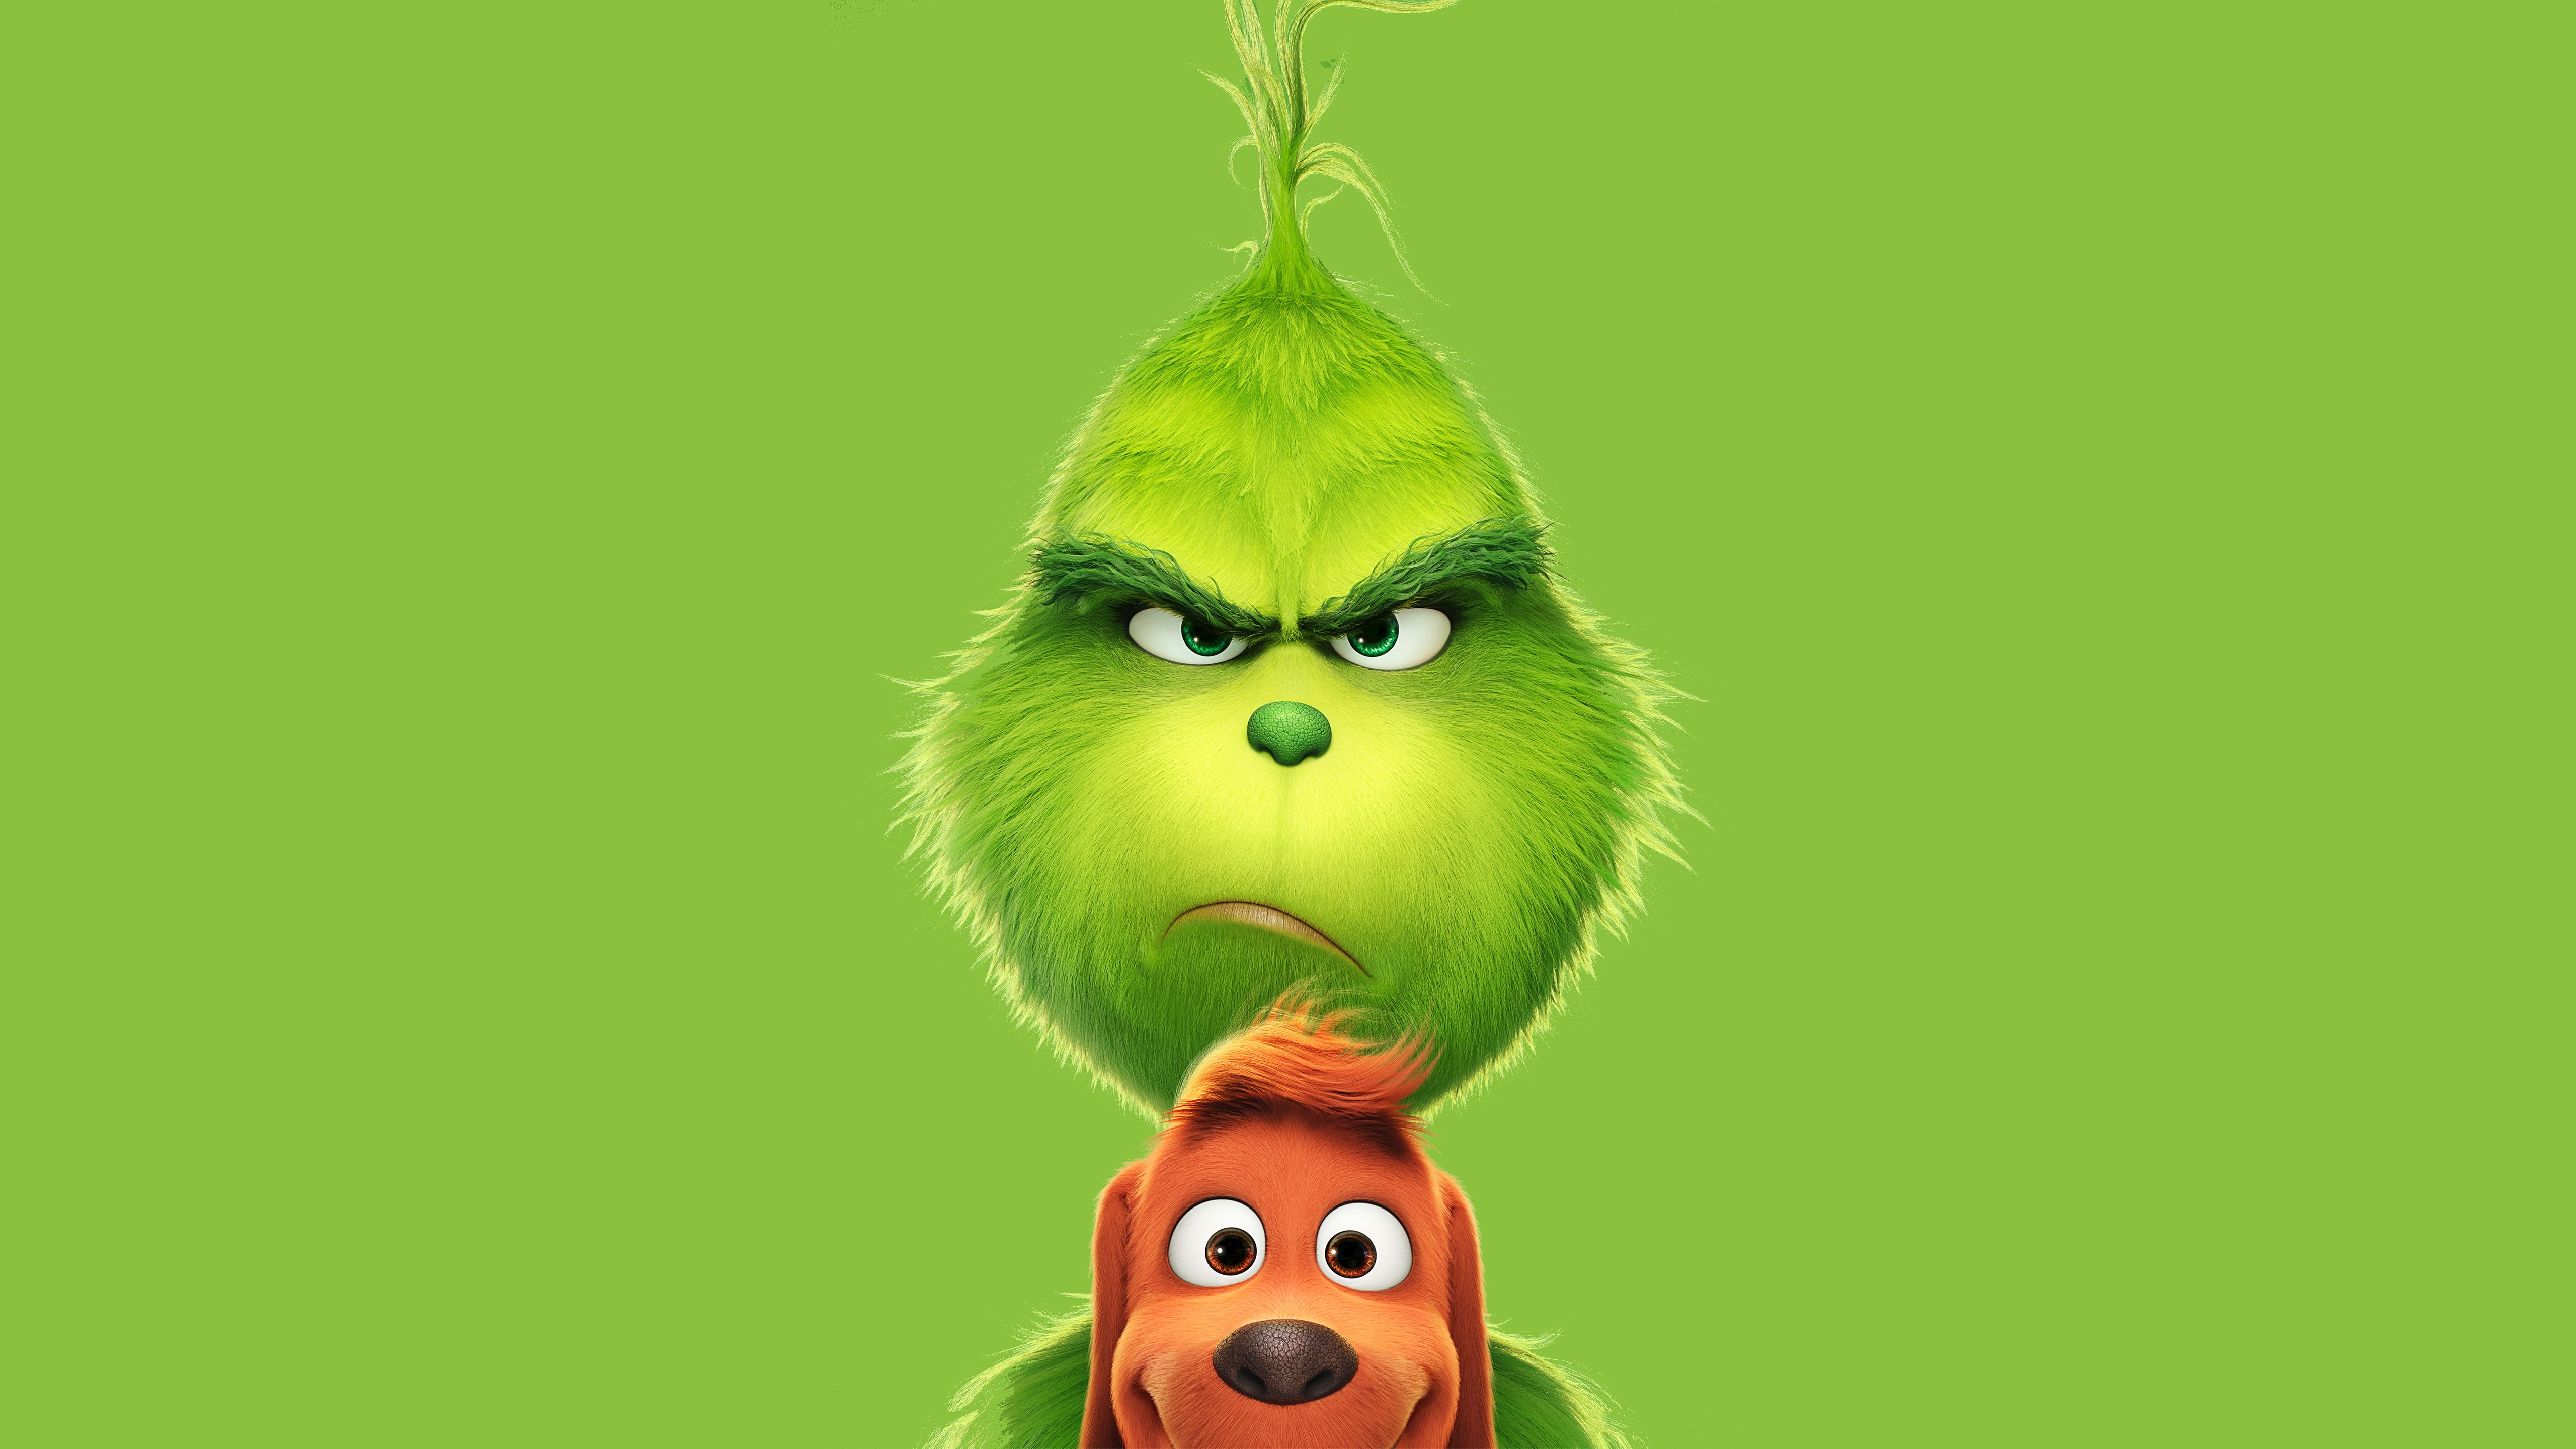 The Grinch 2018 5K Grinch Snoopy wallpaper Movie wallpapers 5120x2880